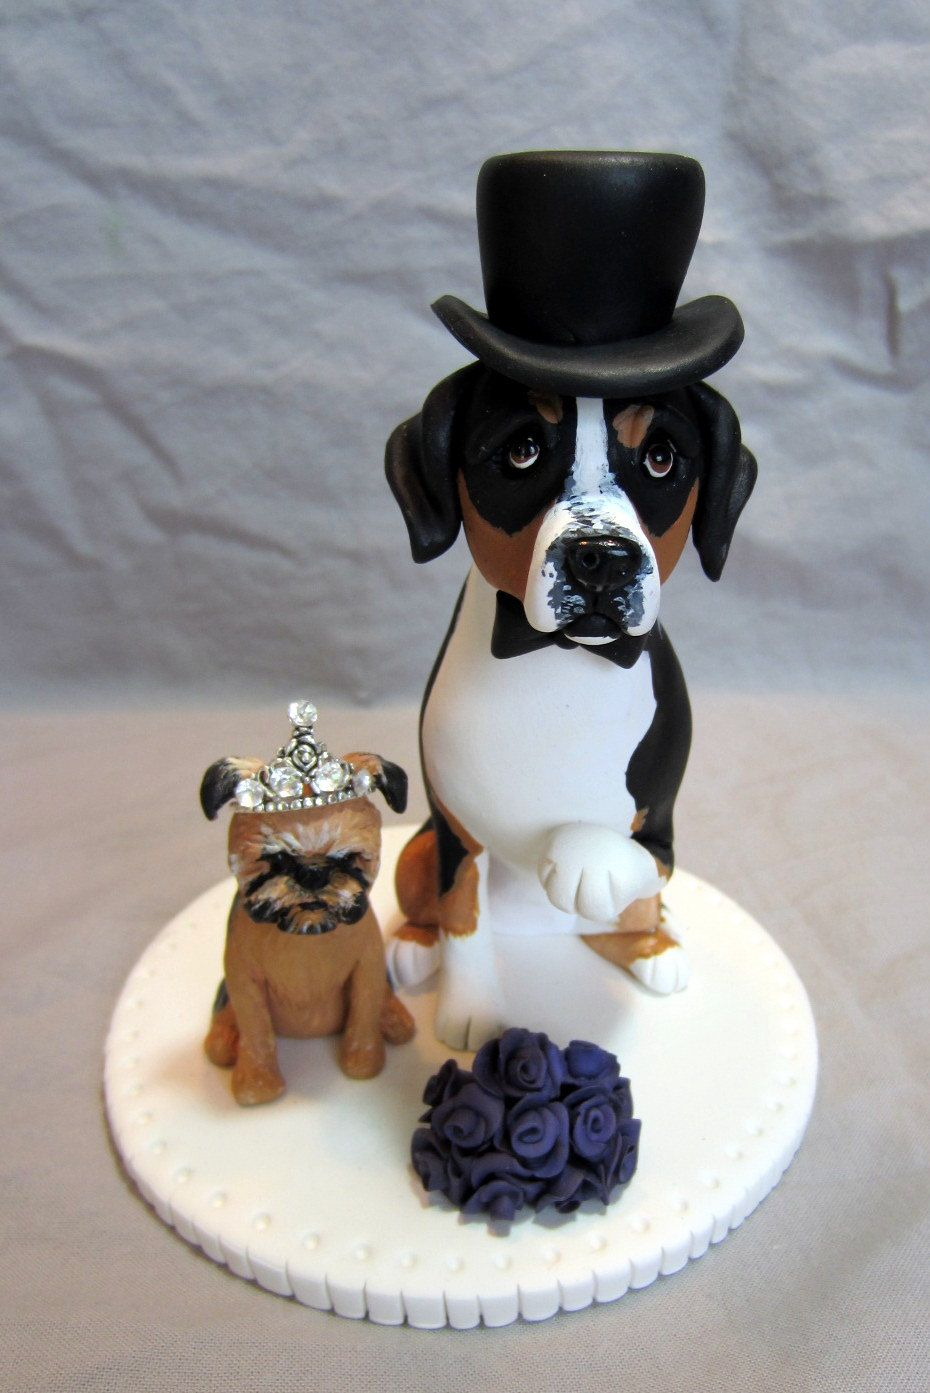 dog cake toppers for wedding cakes custom wedding cake topper dpg or cat clay sculpture mt 3644